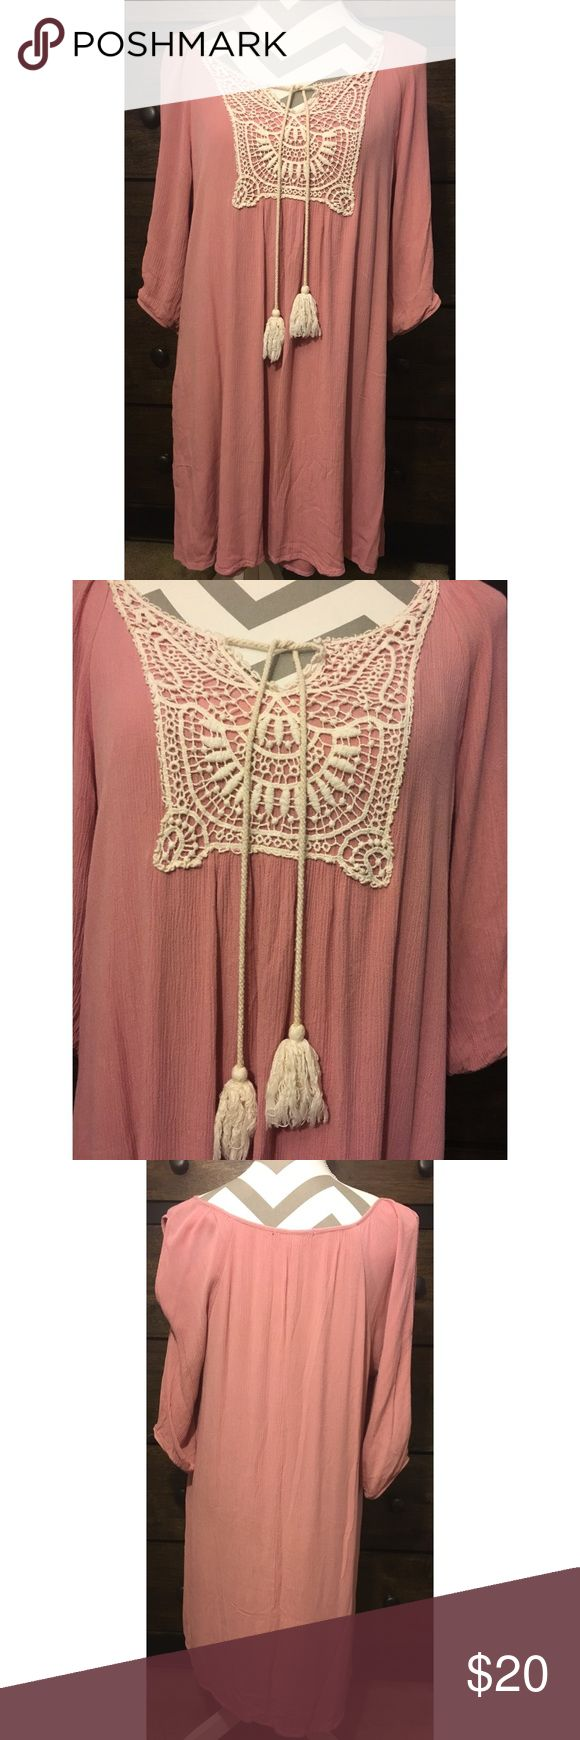 Naif Blush Pink Boho Dress Gently used dress. Crochet and tassel detail at neckline. 3/4 sleeves with cut out detail. Size medium. 100% Rayon naif Dre…